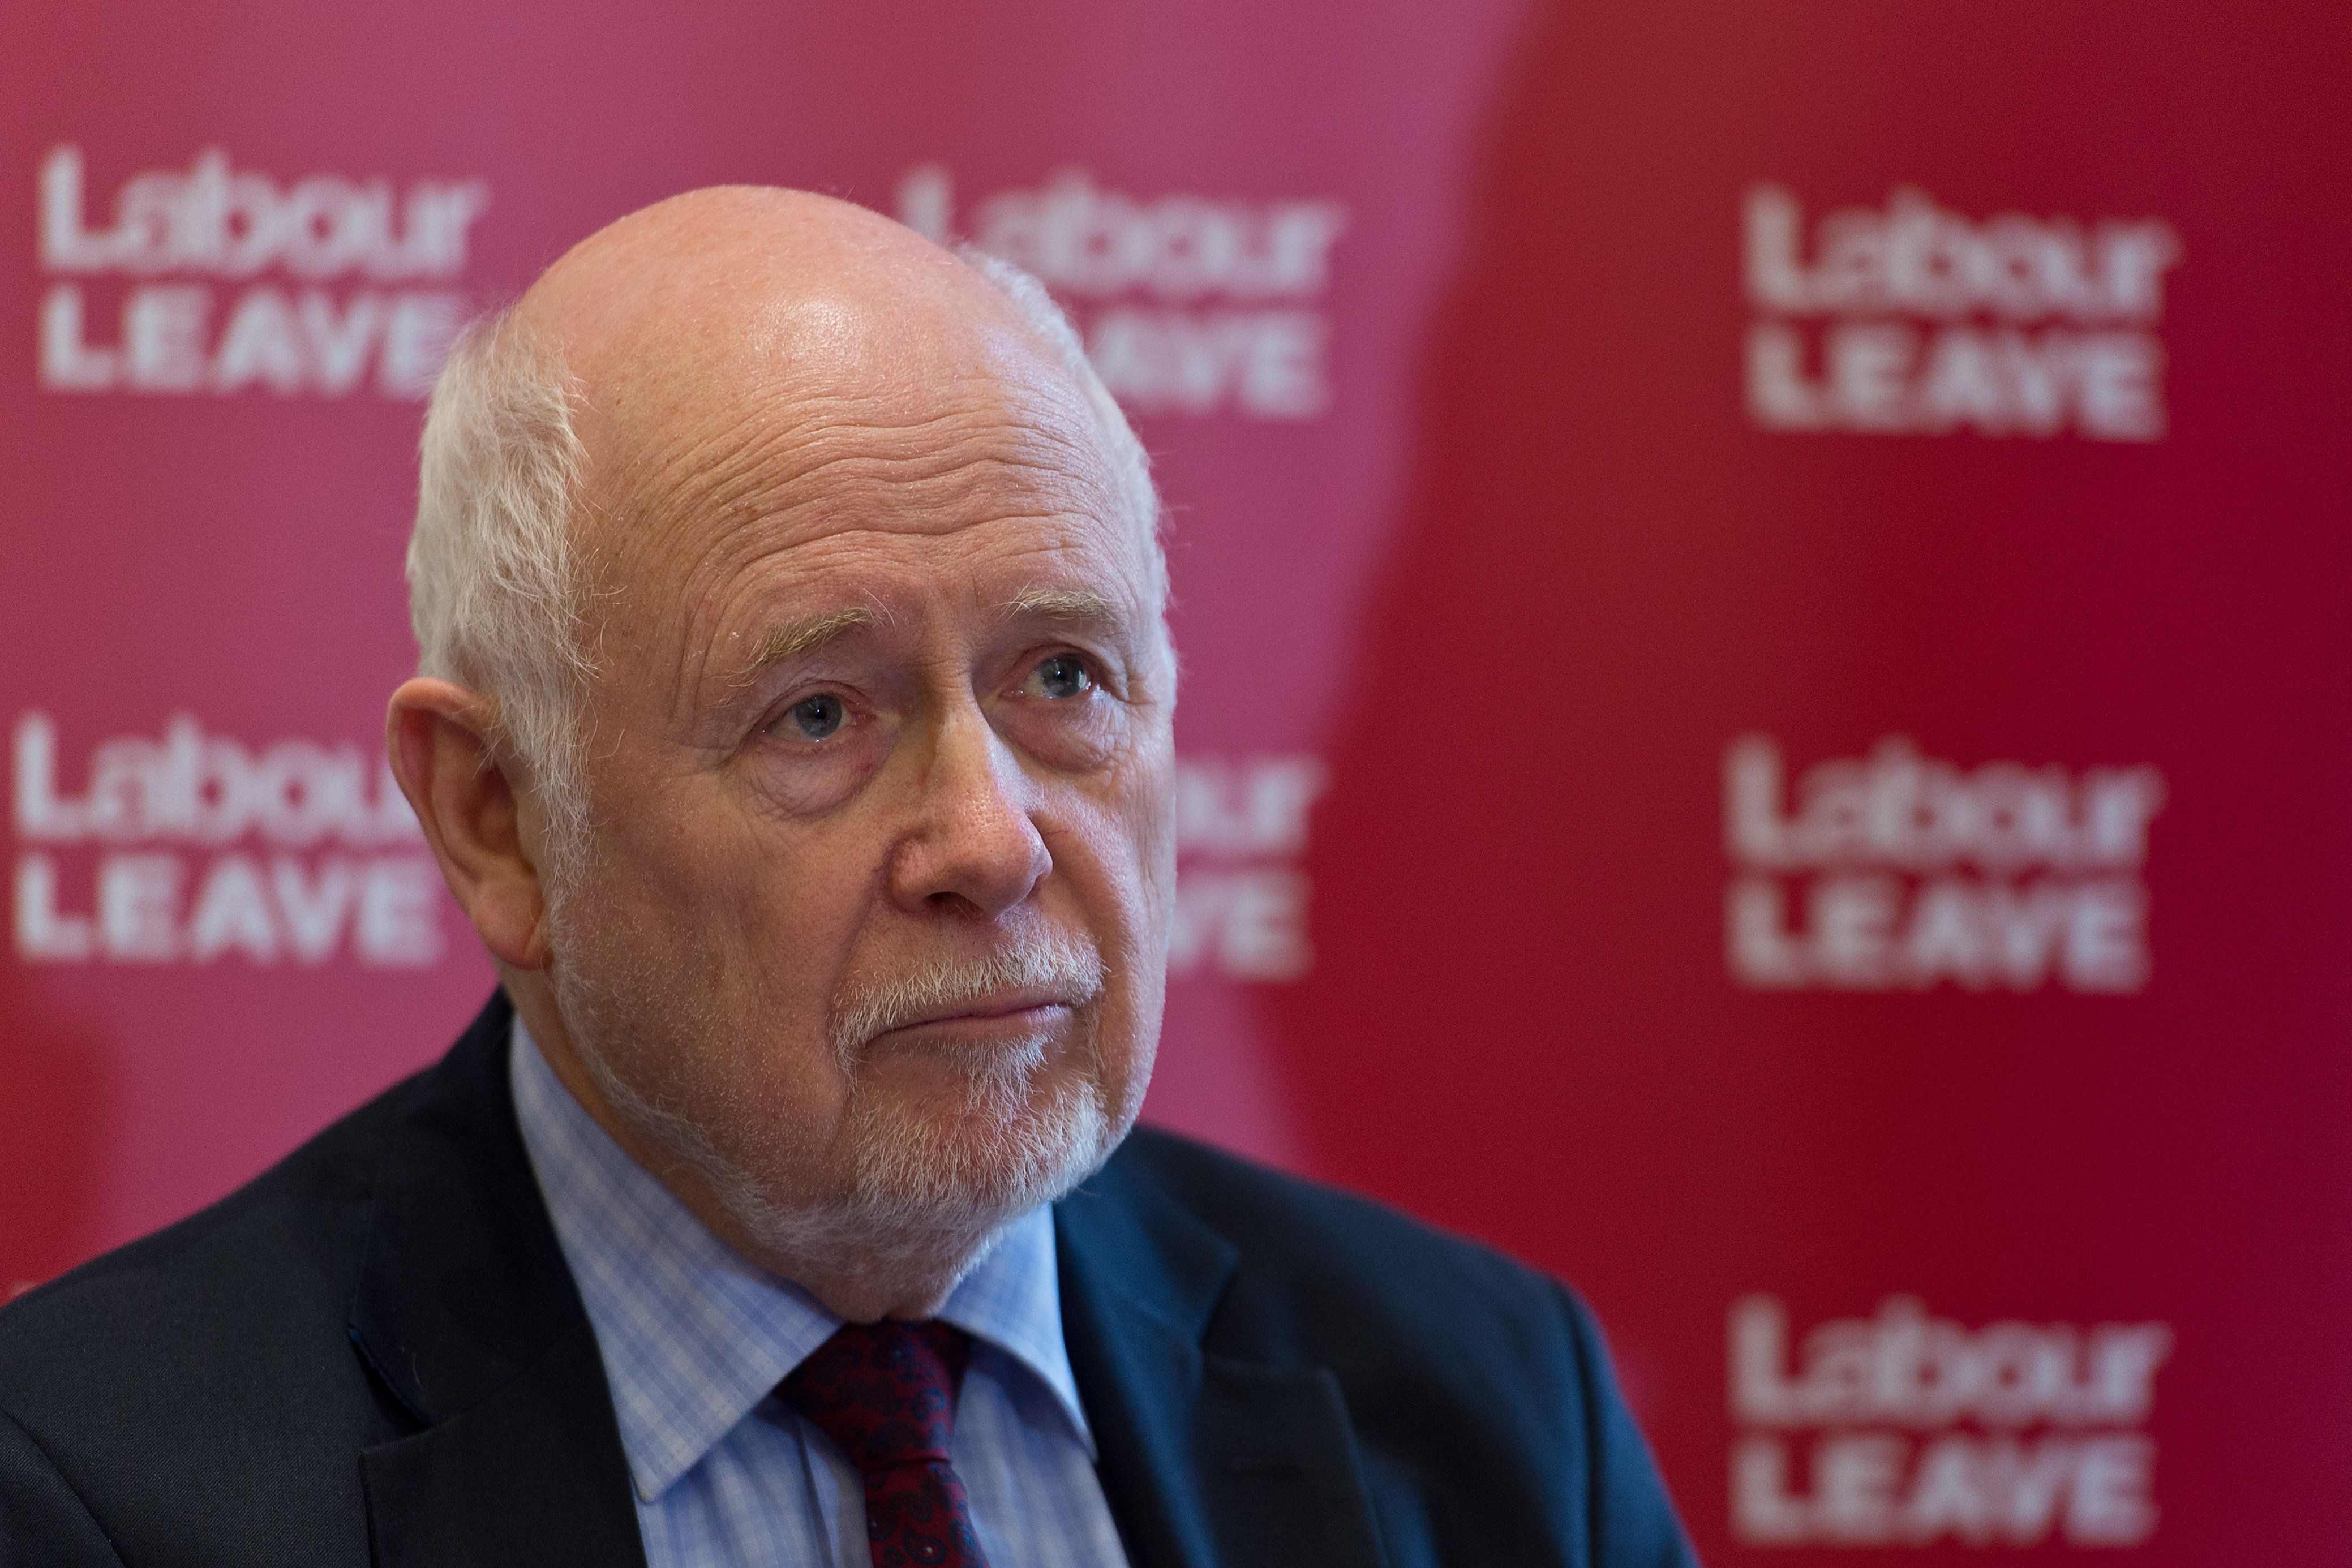 Labour Delays Inquiry Into Alleged Misconduct By MP Kelvin Hopkins